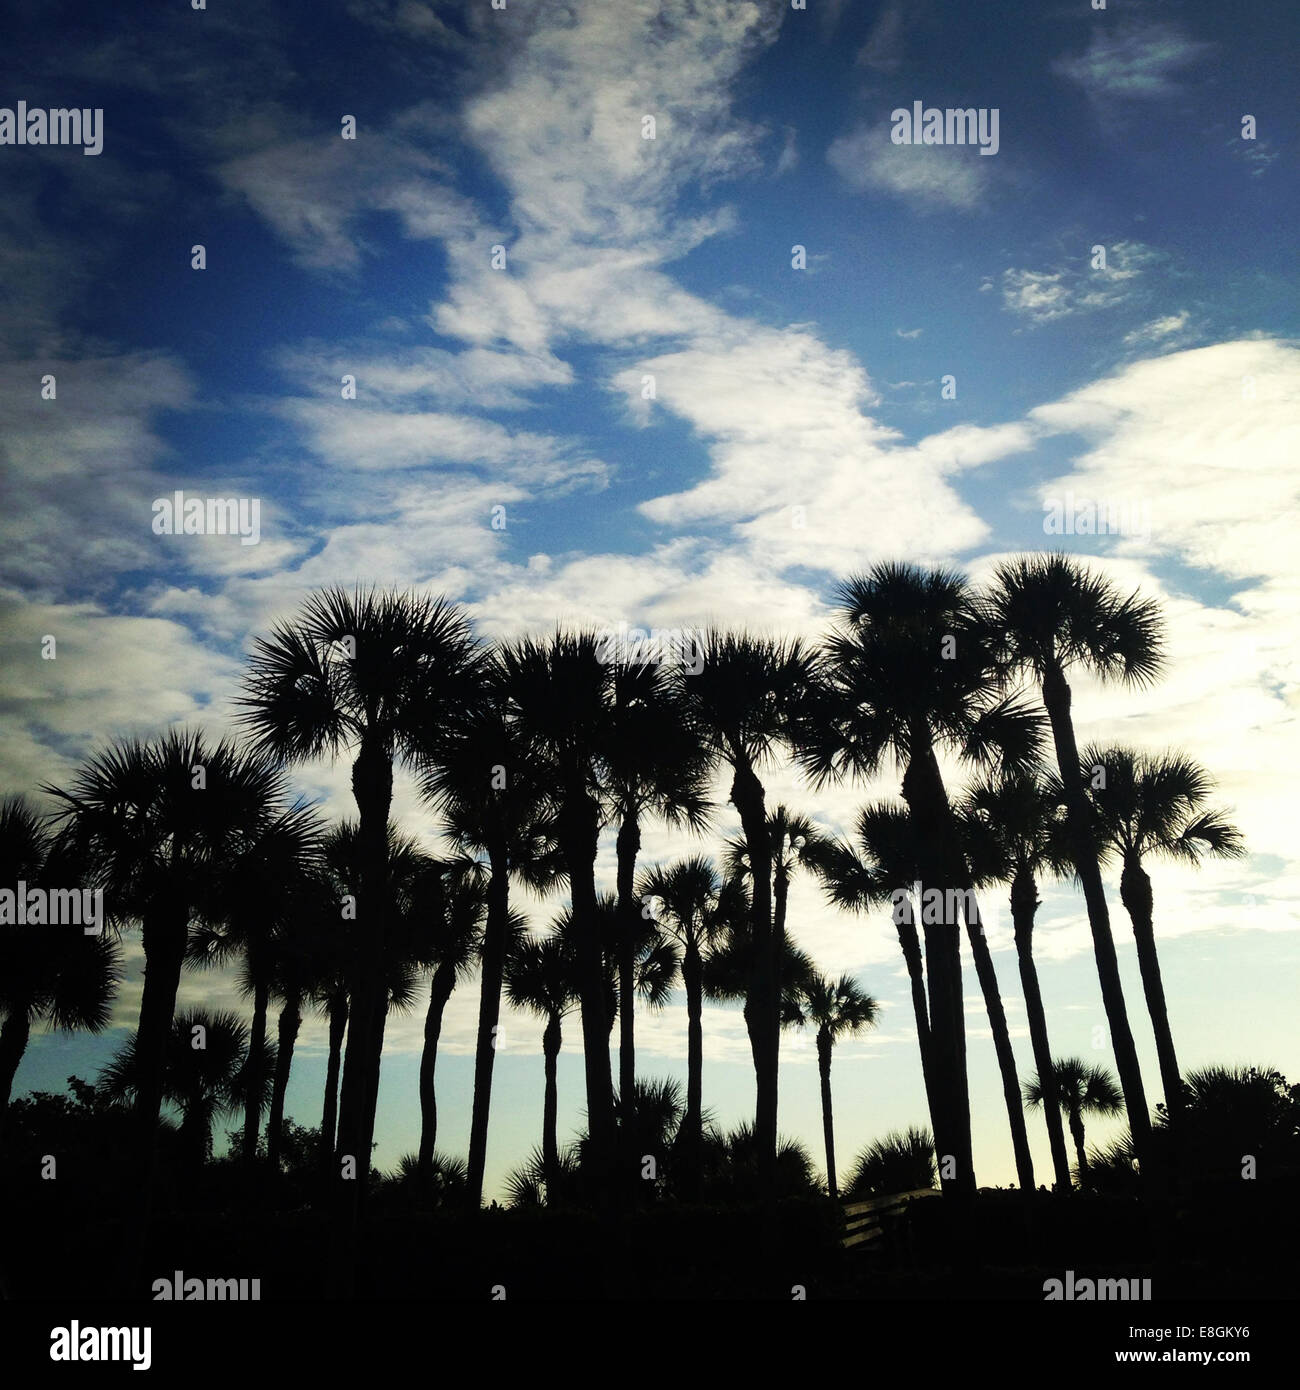 USA, Florida, Silhouette of palm trees Stock Photo